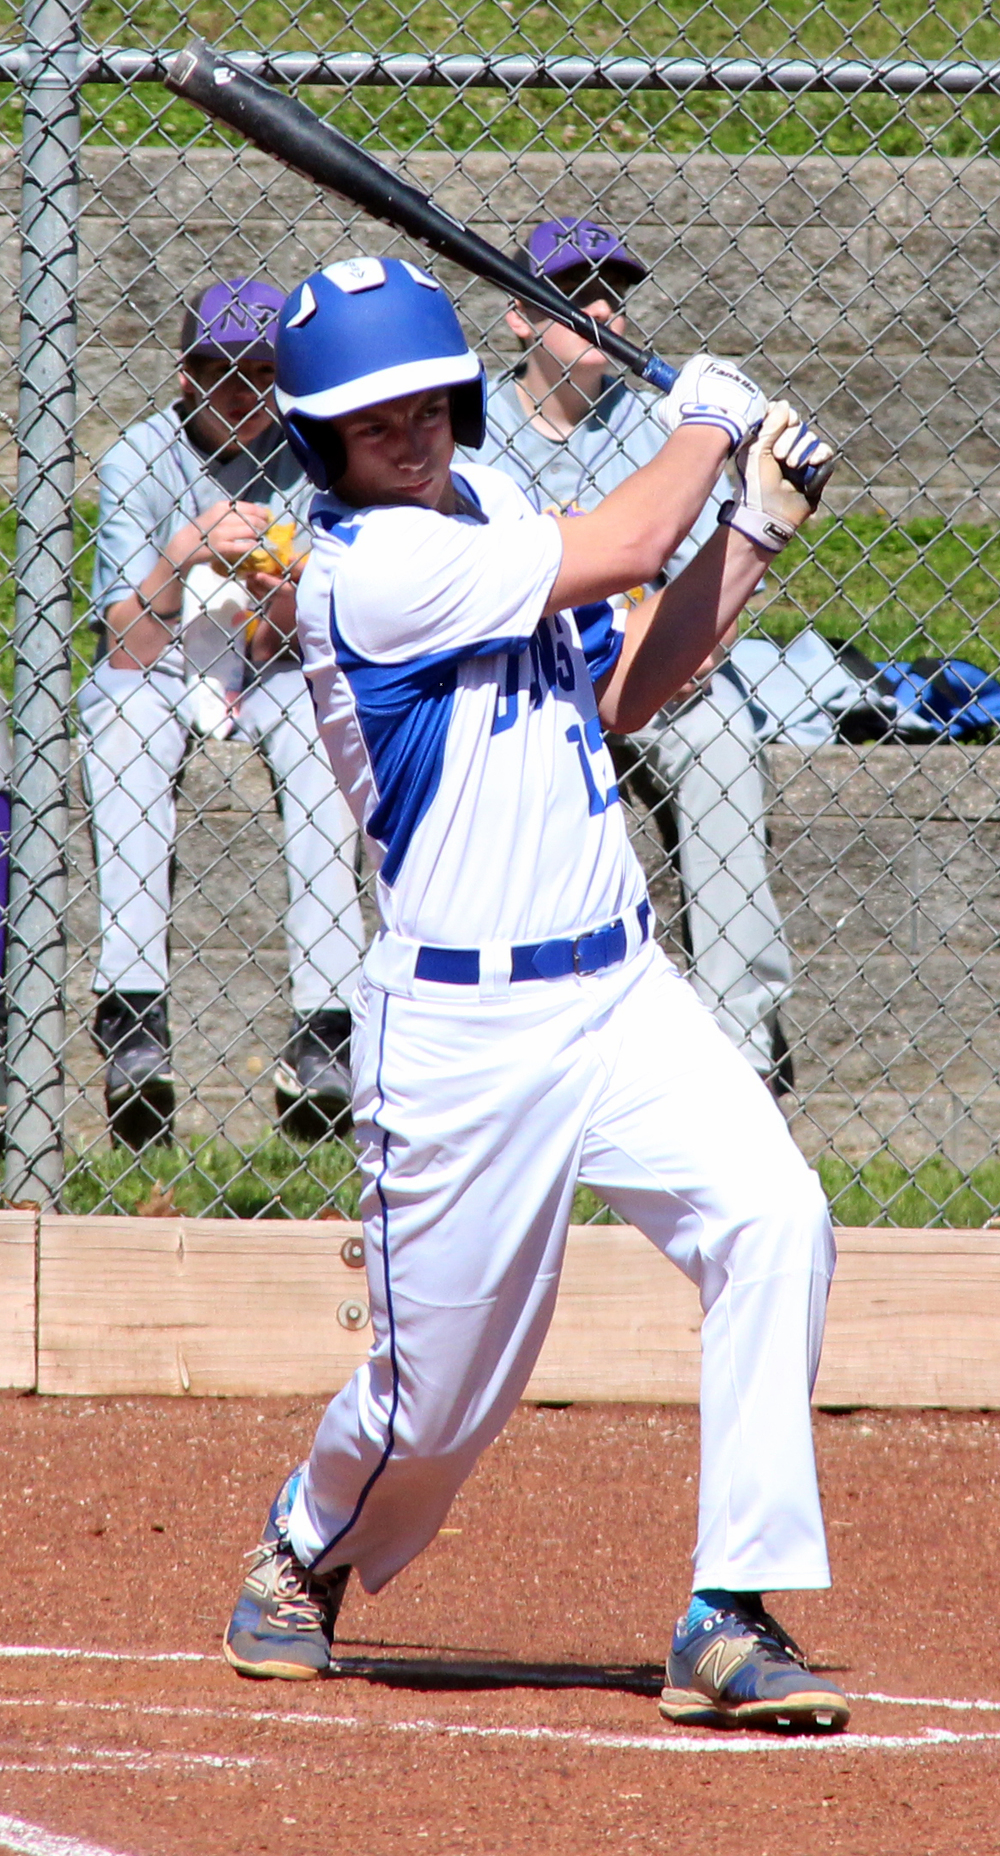 ROSS MARTIN/Citizen photo West Platte sophomore Grant Eagen follows through on a grand slam home run hit in the bottom of the first inning Wednesday, May 4 against North Platte in Weston, Mo. It was Eagen's first career home run.